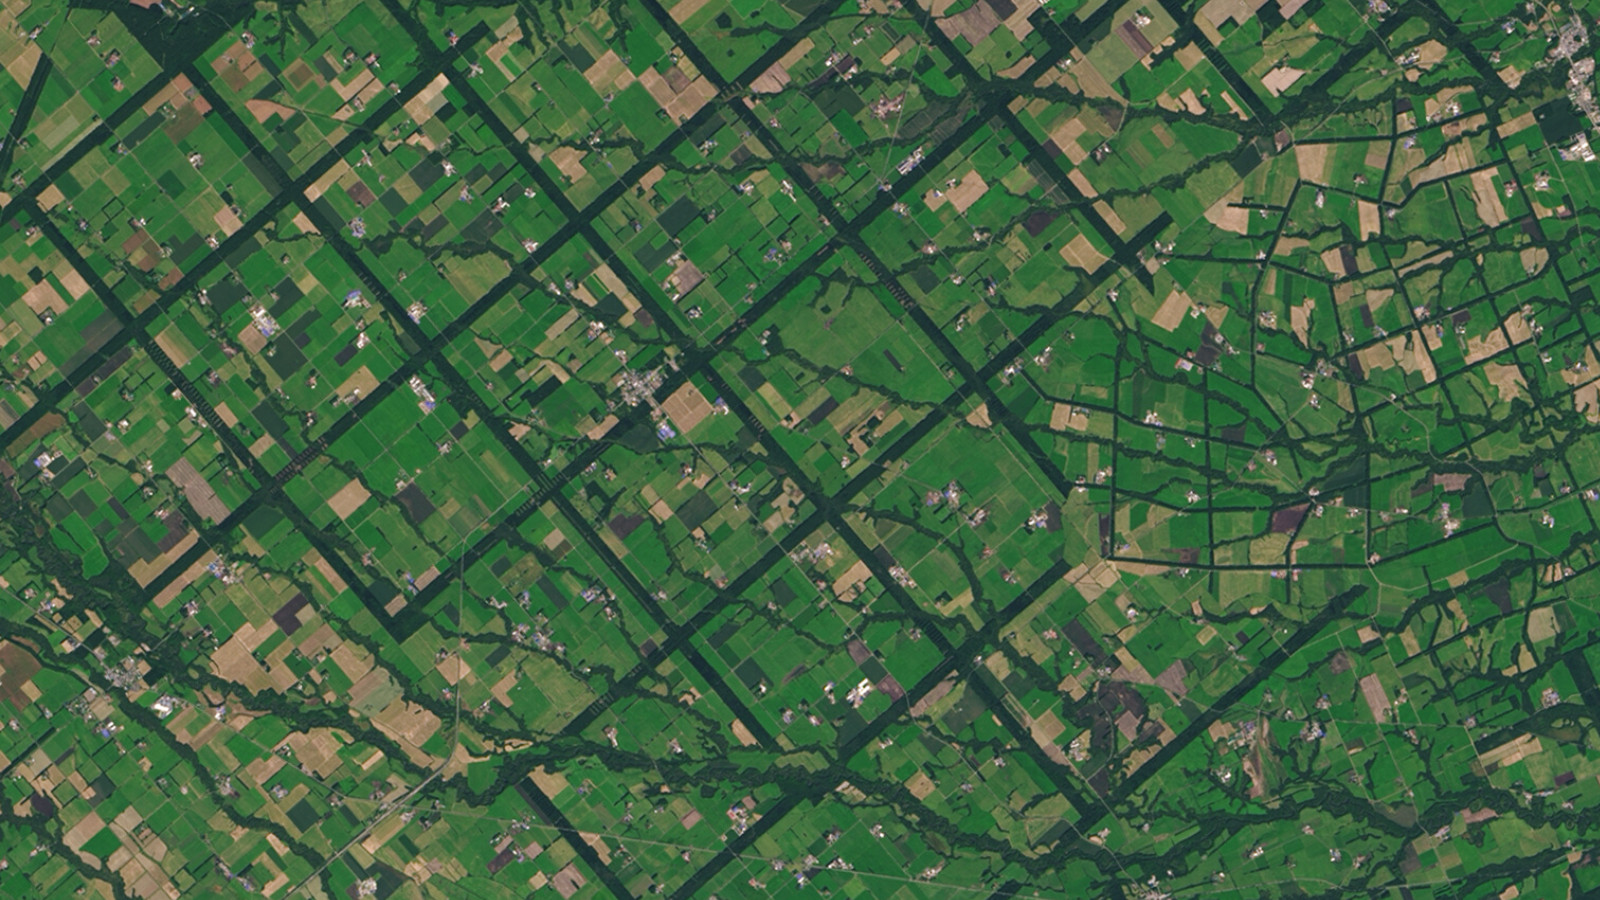 From above, the Konsen Plateau in eastern Hokkaido, Japan offers a remarkable sight: a massive grid that spreads across the rural landscape like a checkerboard. The strips are forested windbreaks—180-meter (590-foot) wide rows of coniferous trees that help shelter grasslands and animals from harsh weather. Image Credit: Operational Land Imager on Landsat 8.